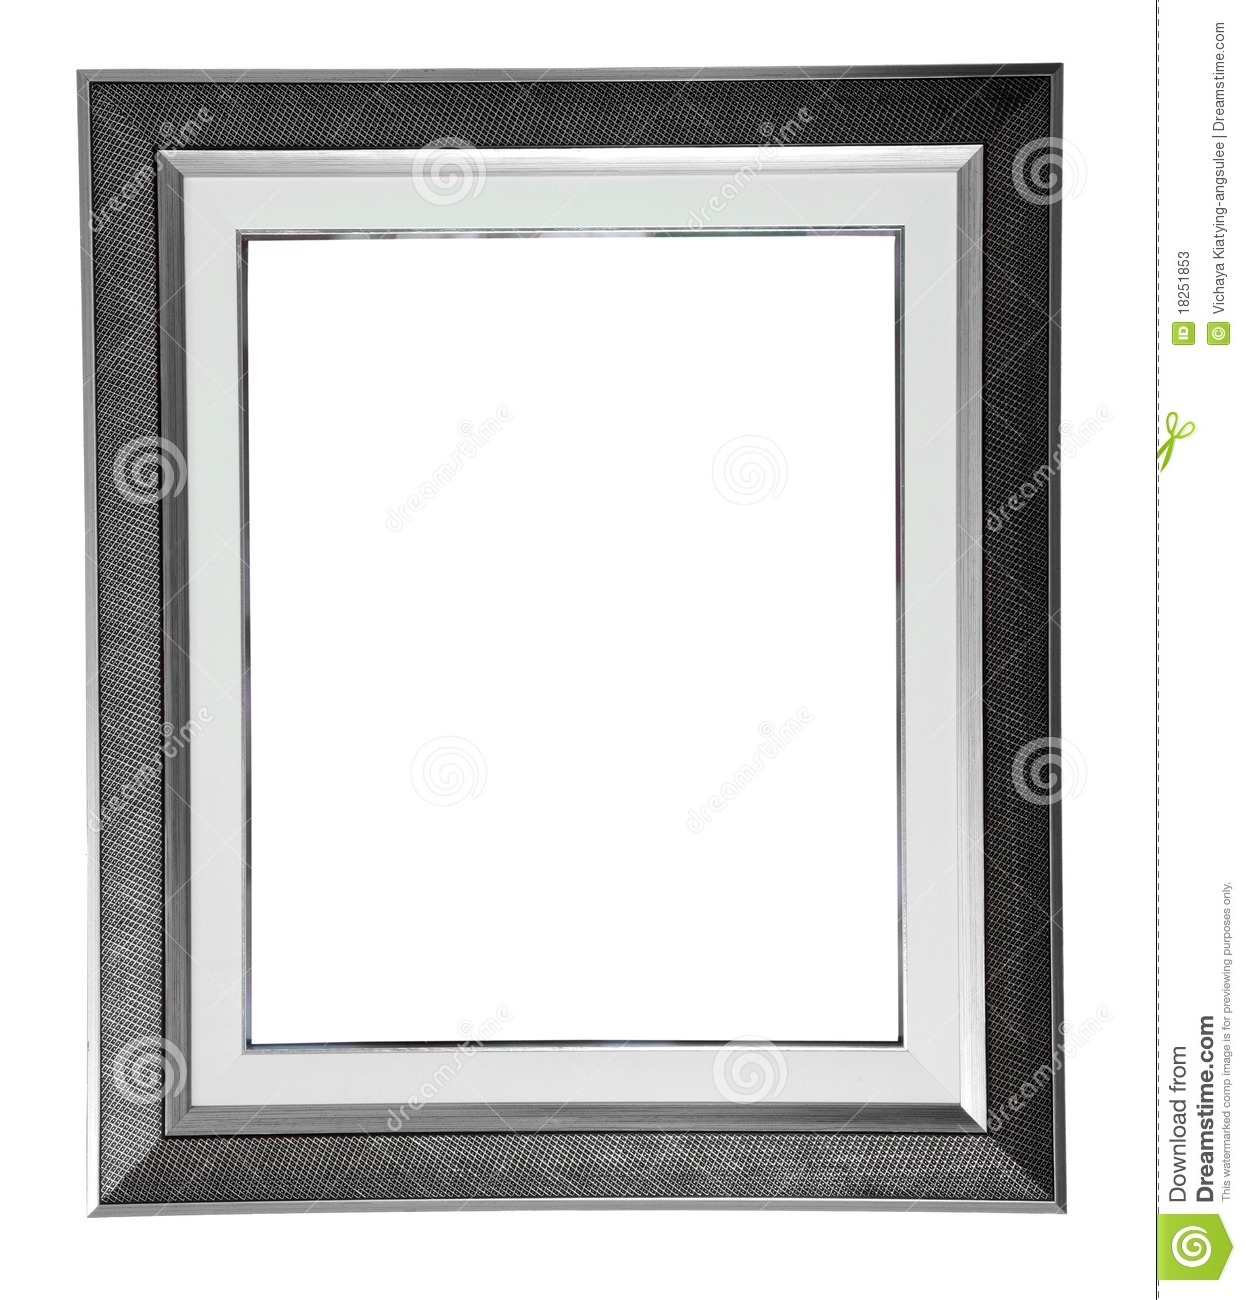 Silver modern frame stock image. Image of gallery, isolated - 18251853